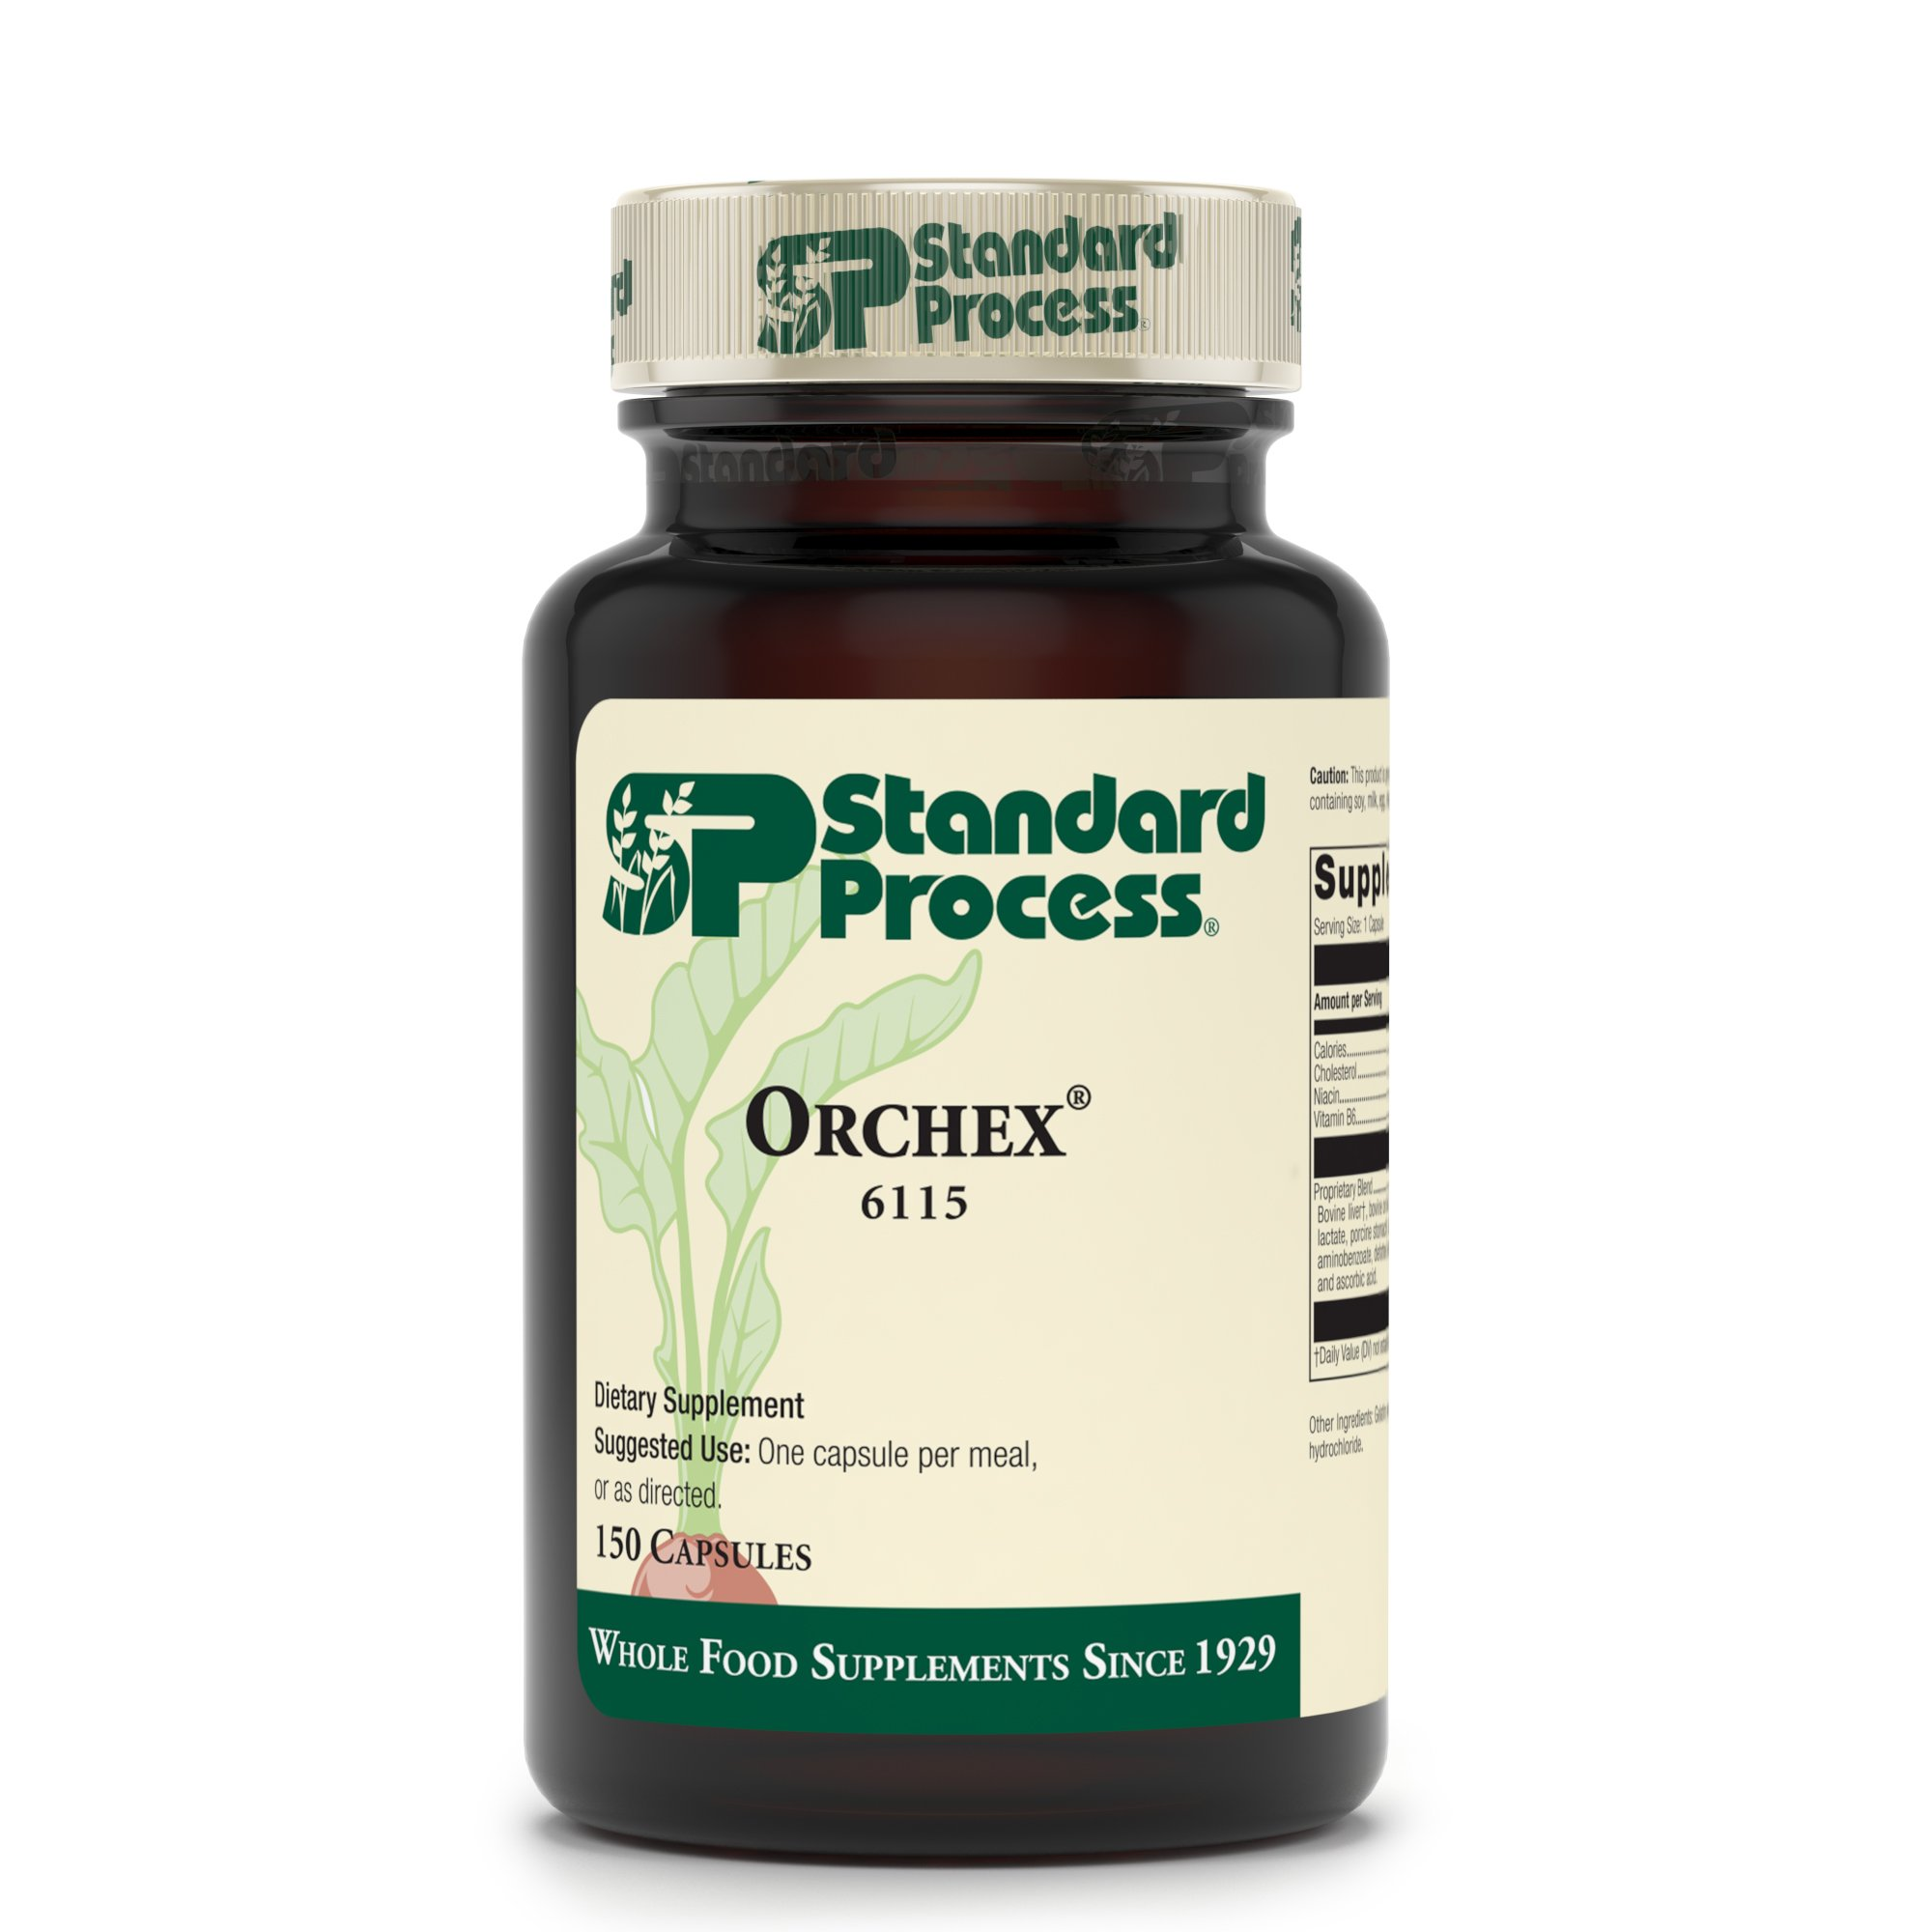 Standard Process - Orchex - Nervous System Balance Support Supplement, Supports Stress Response and Emotional Balance, Provides Niacin and Vitamin B6 - 150 Capsules